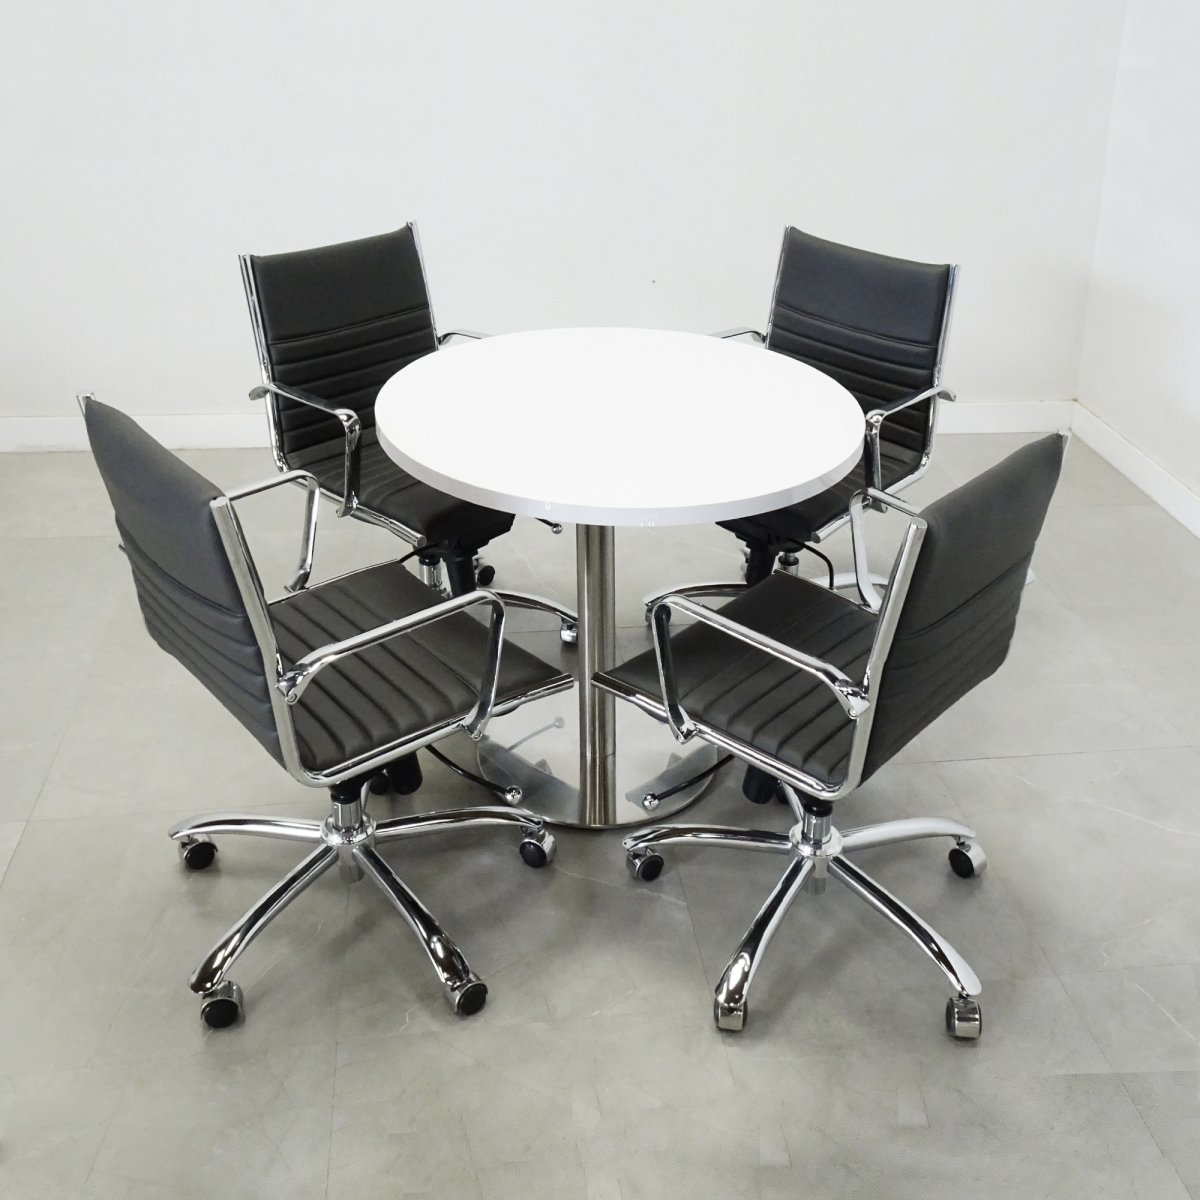 California Round Table with Laminate Top